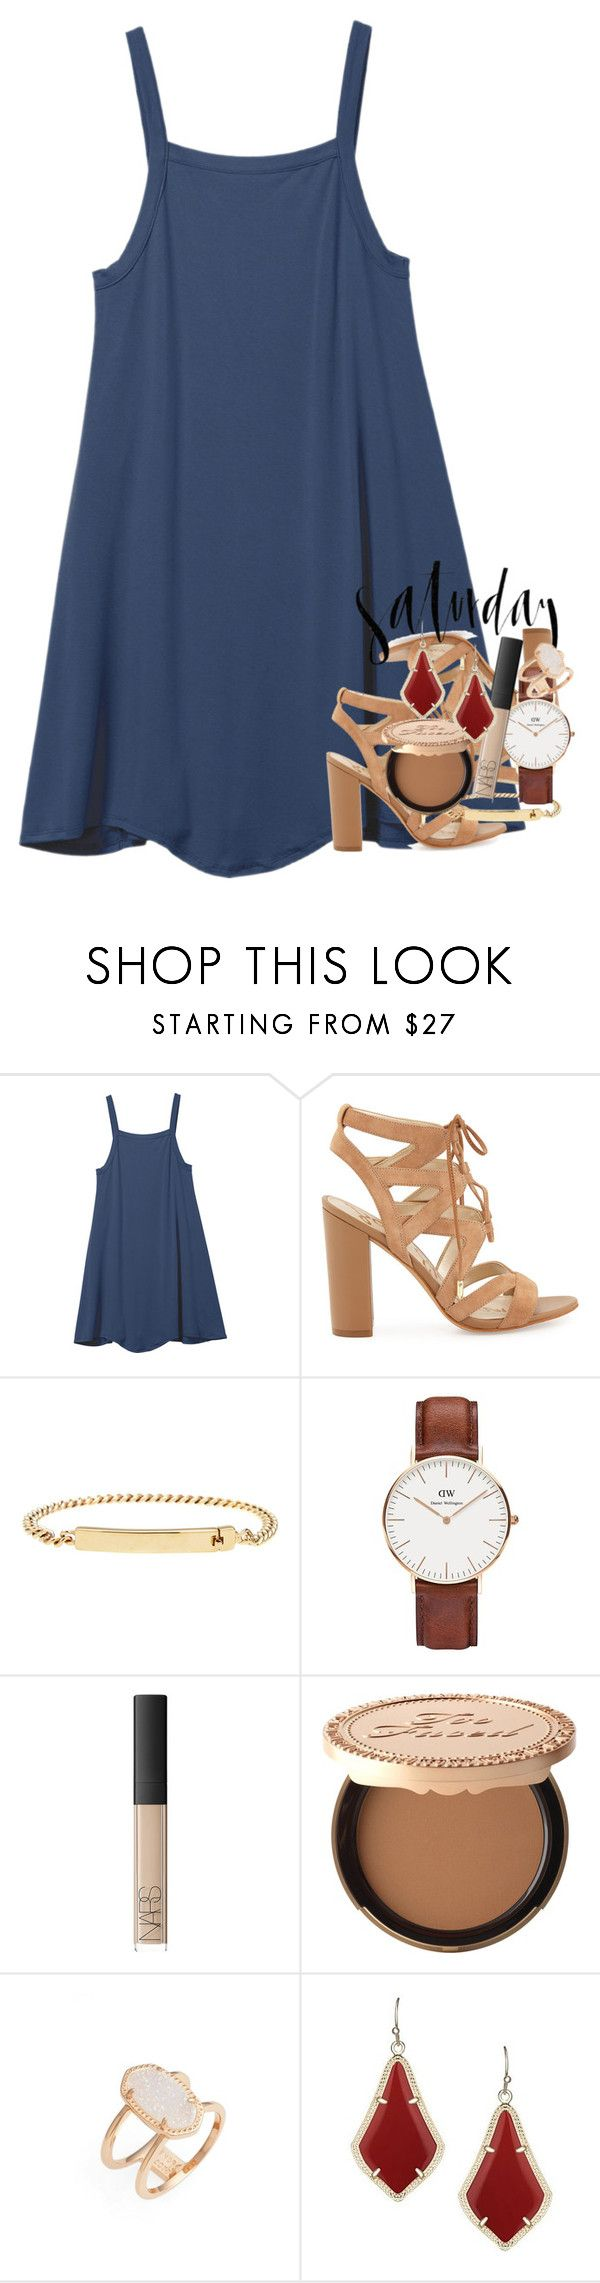 """""""it's a party in the usa!!"""" by classynsouthern ❤ liked on Polyvore featuring RVCA, Sam Edelman, A.P.C., Daniel Wellington, NARS Cosmetics, Too Faced Cosmetics, Rawlings, Kendra Scott and katies4thcontestofficial"""